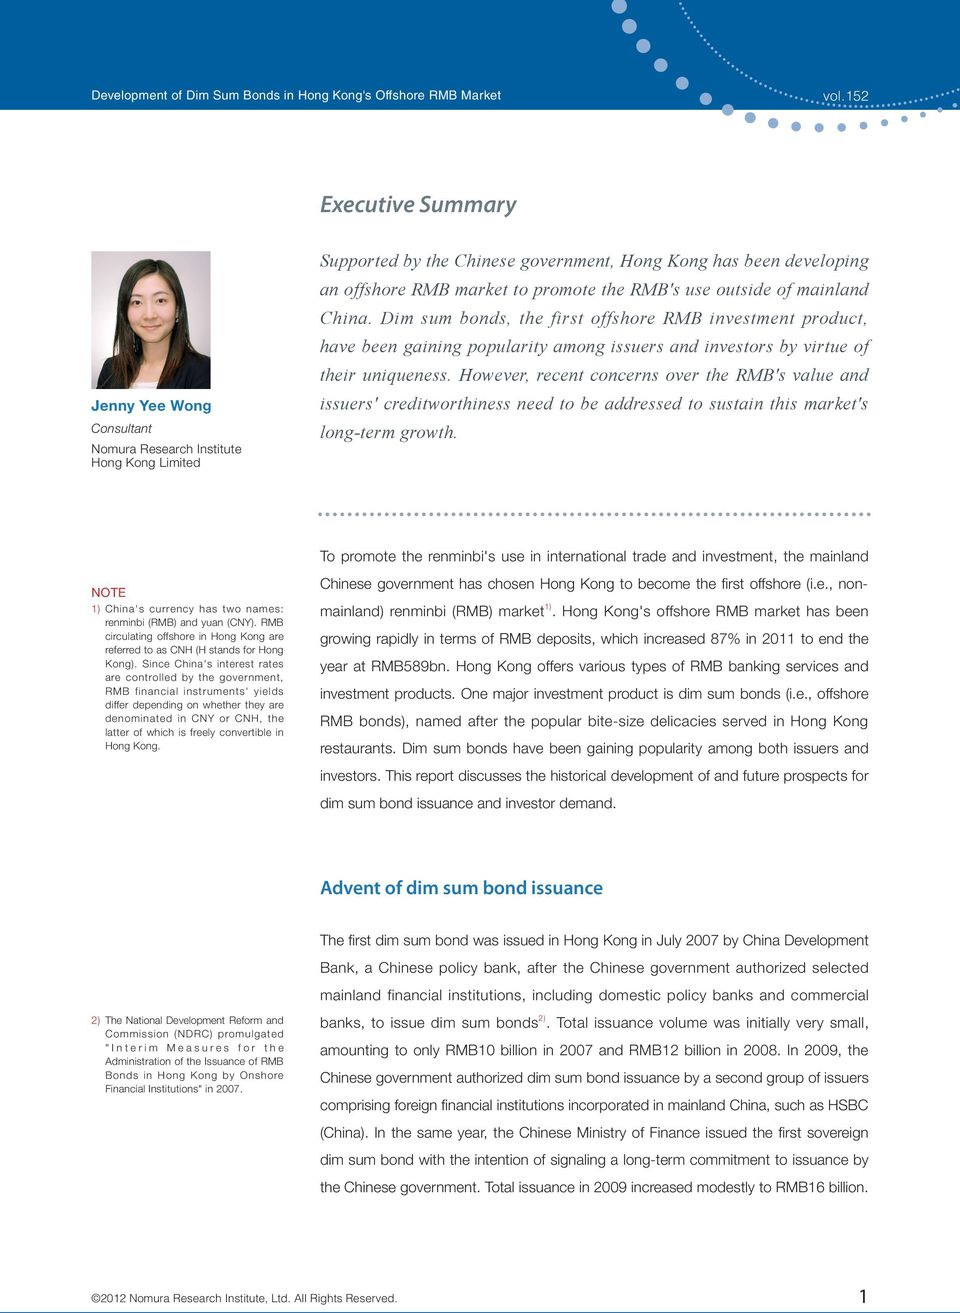 However, recent concerns over the RMB's value and Jenny Yee Wong Consultant Nomura Research Institute Hong Kong Limited issuers' creditworthiness need to be addressed to sustain this market's